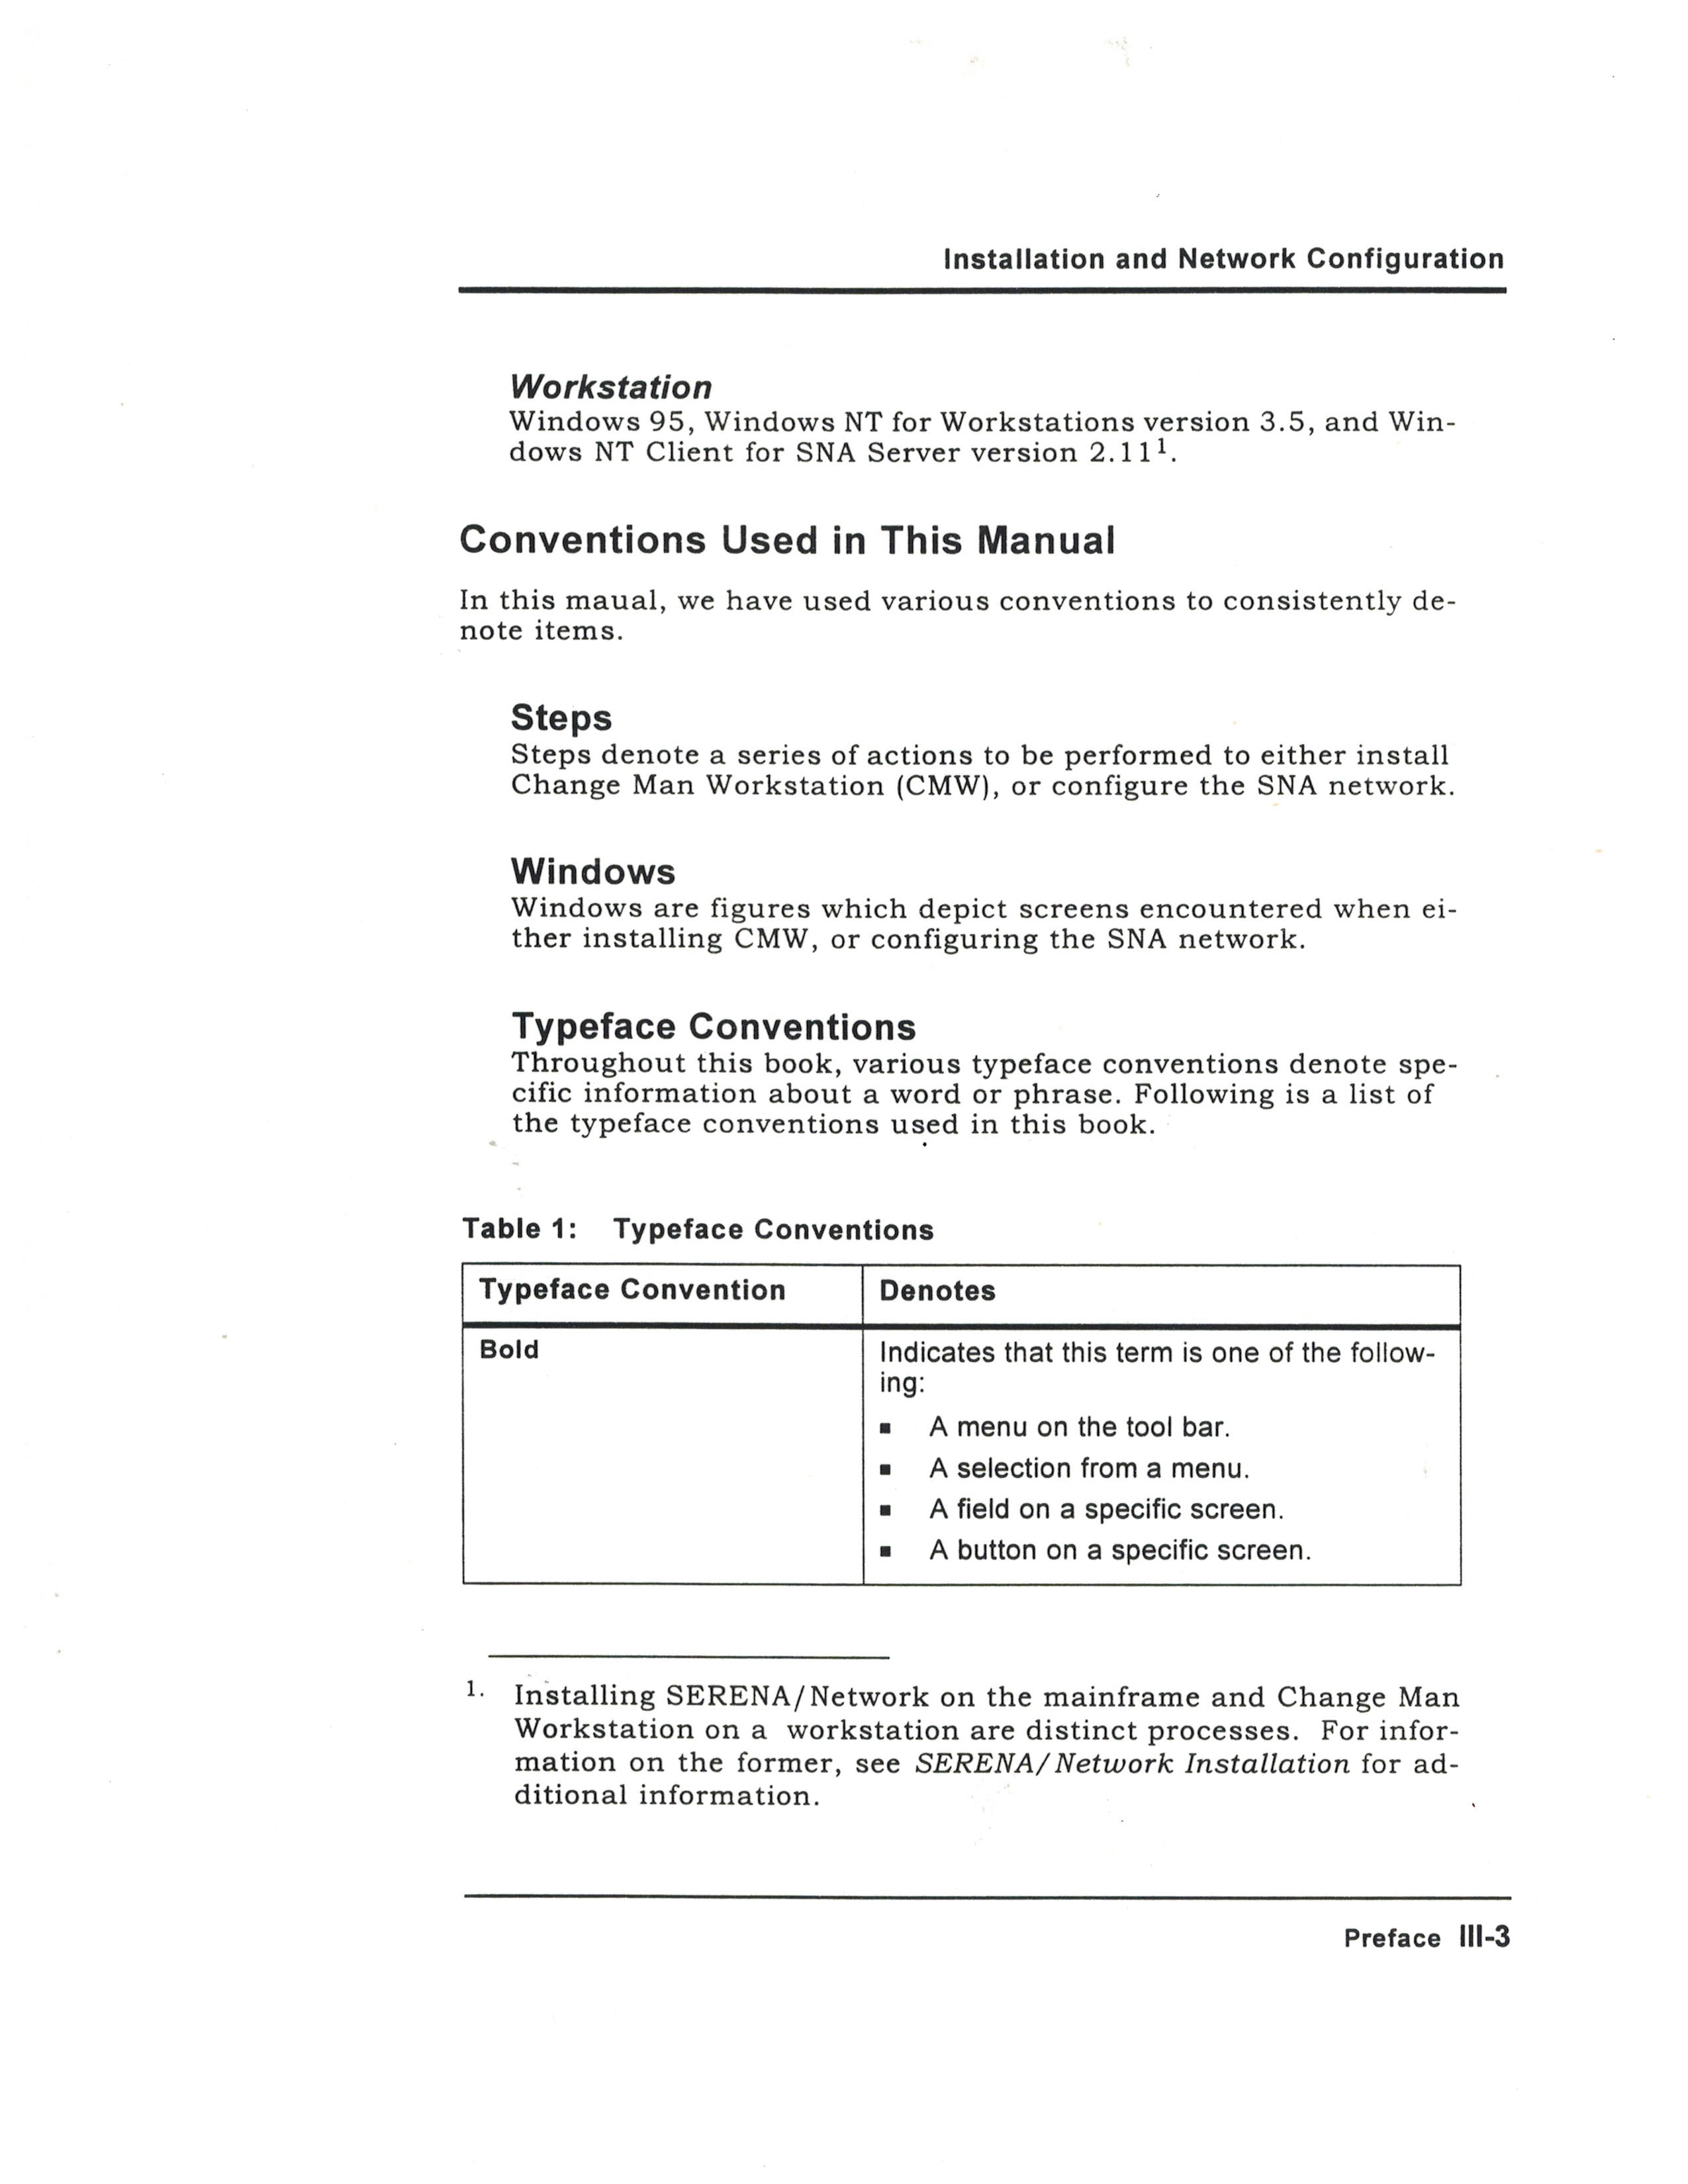 Technical Manual Book Template Design | WOW Factor Writing